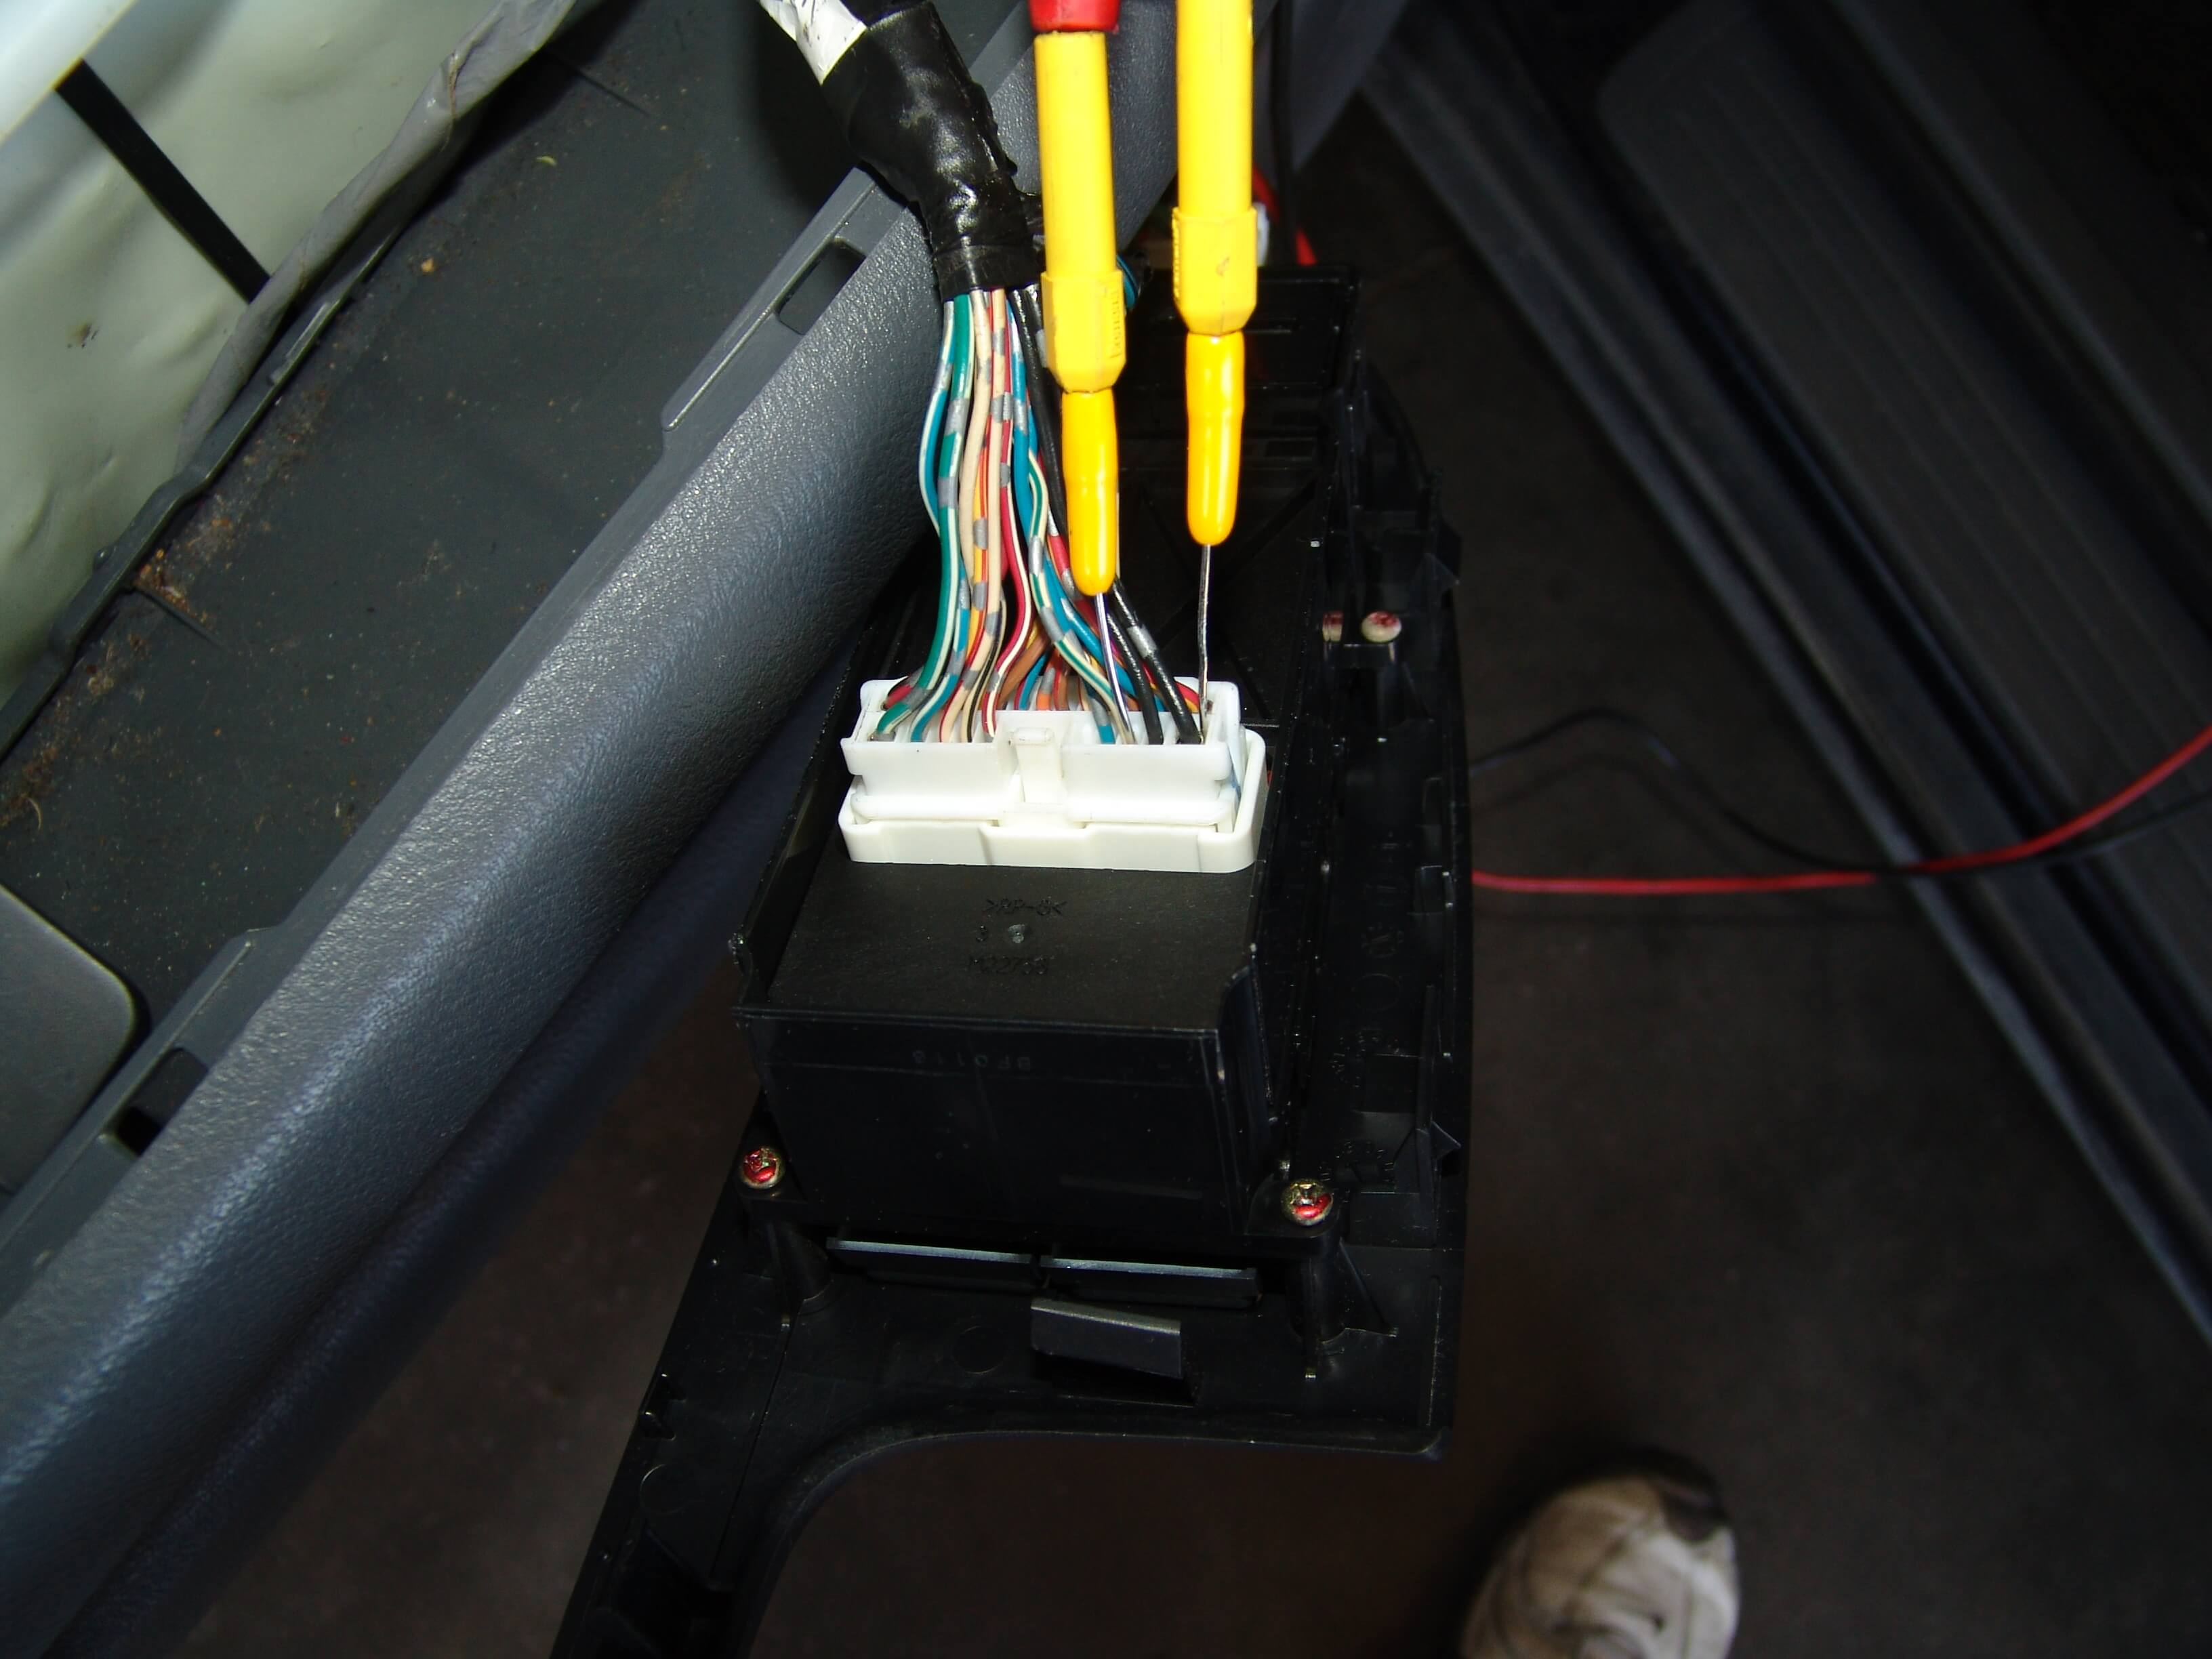 Sparkys Answers 2006 Honda Accord Passenger Power Windows Do Not Work 3 Wire Harness Repair Window My Choice Is To Always Install A New Factory Master Switch When There Failure But I Understand That Circumstances Sometimes Dictate Another